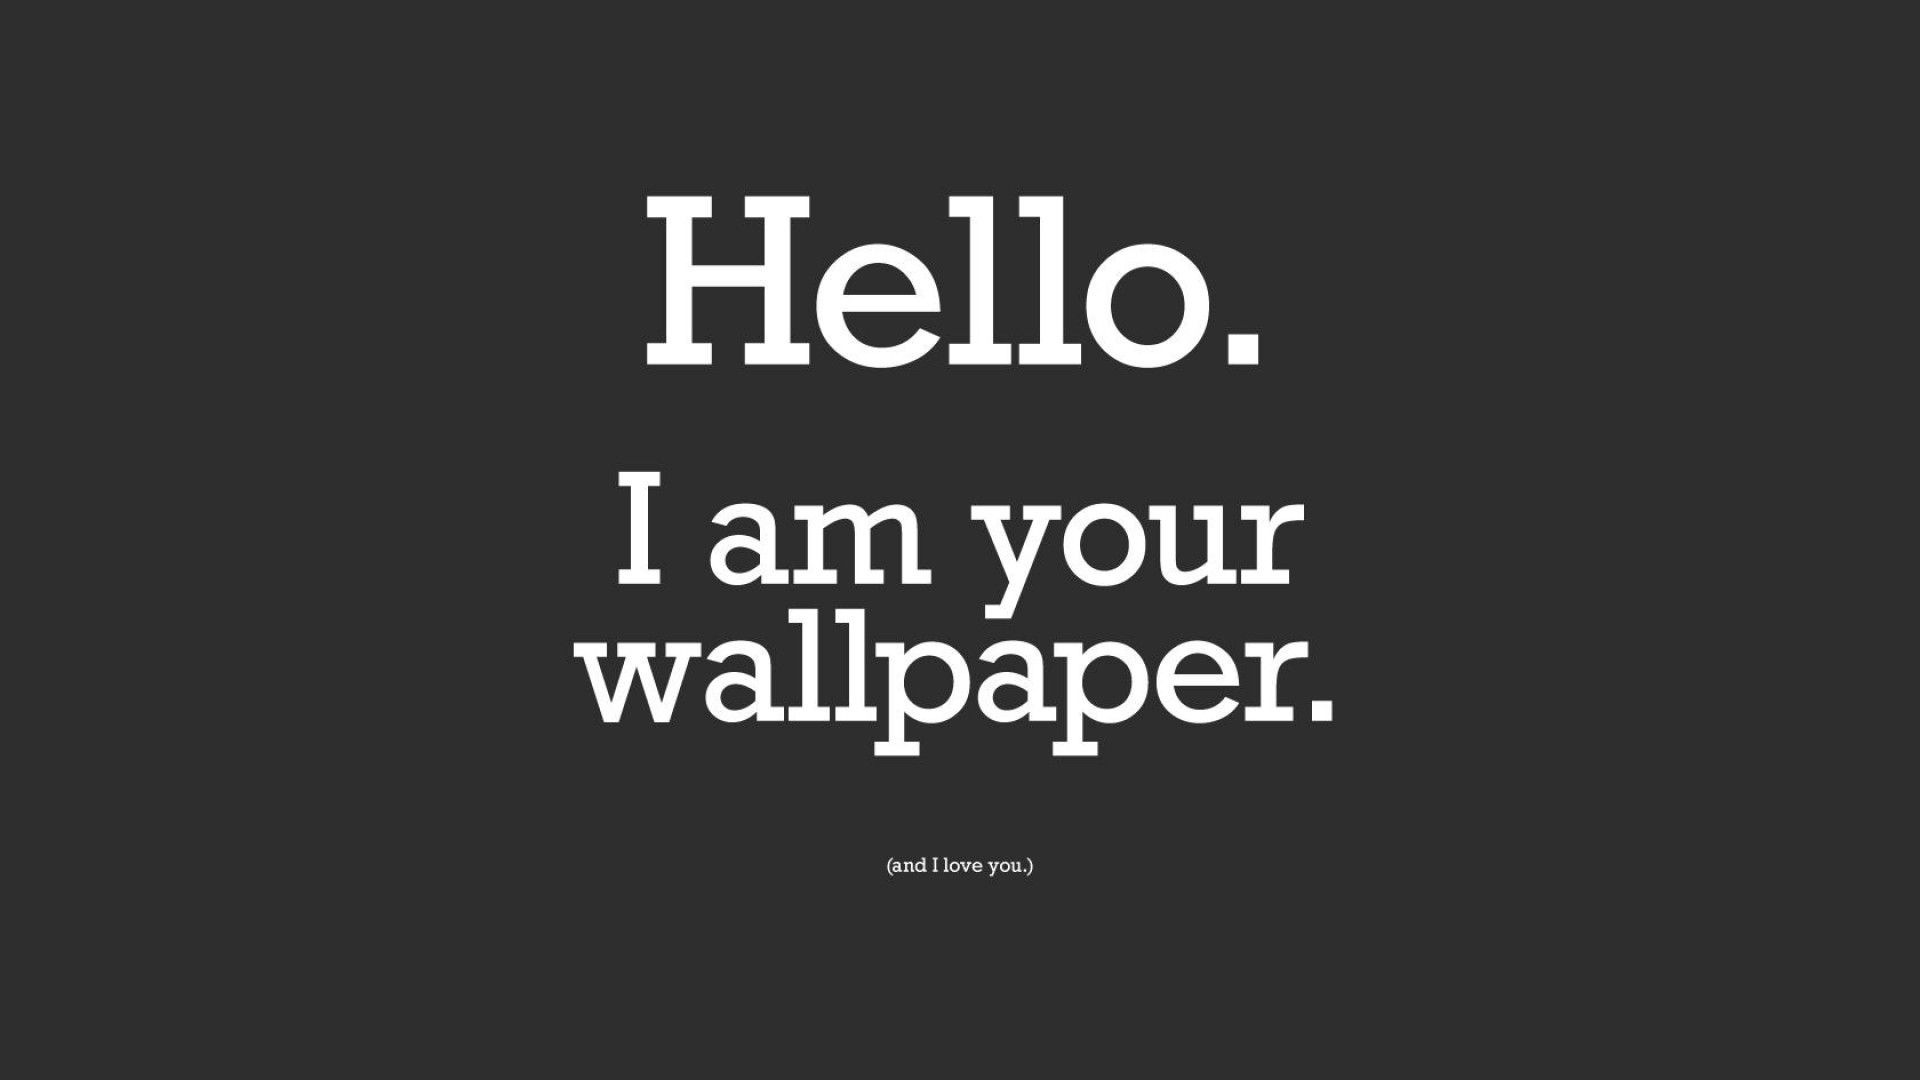 Amazing funny wallpapers hd 1080p funny wallpapers pinterest amazing funny wallpapers hd 1080p voltagebd Images